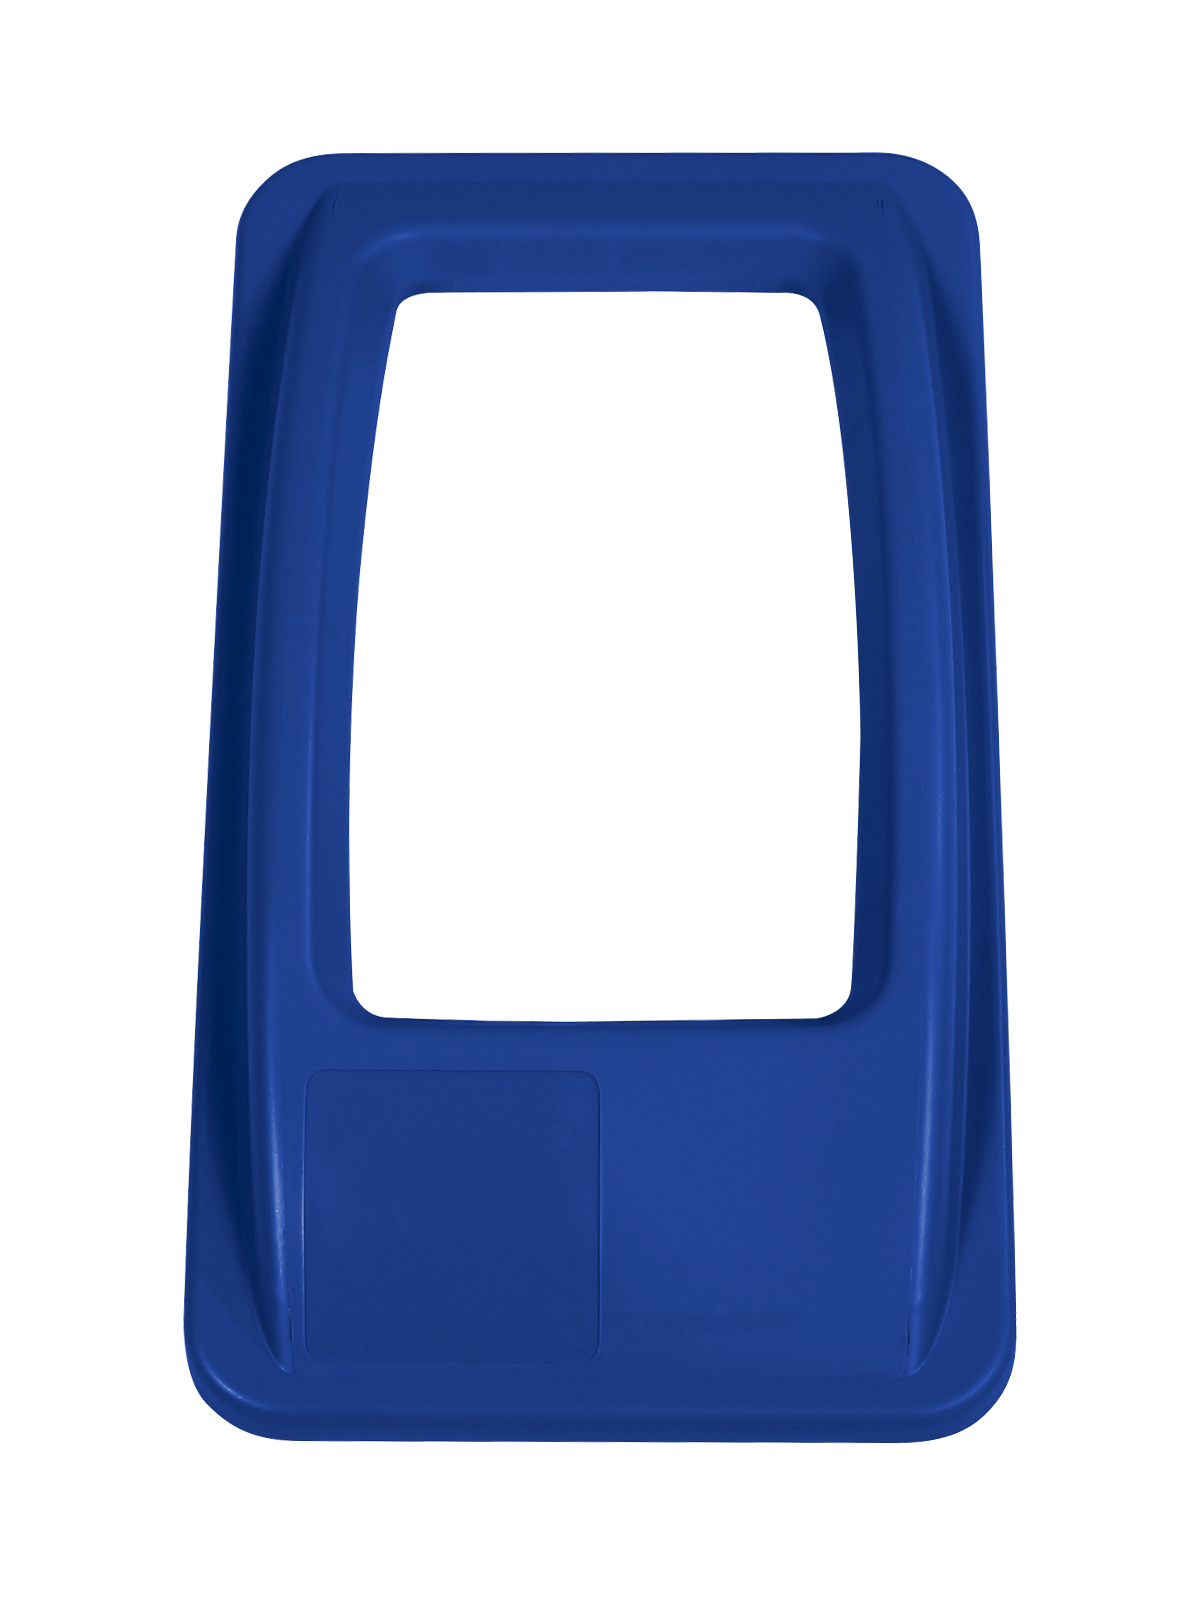 WASTE WATCHER - Single - Lid - Full - Royal Blue